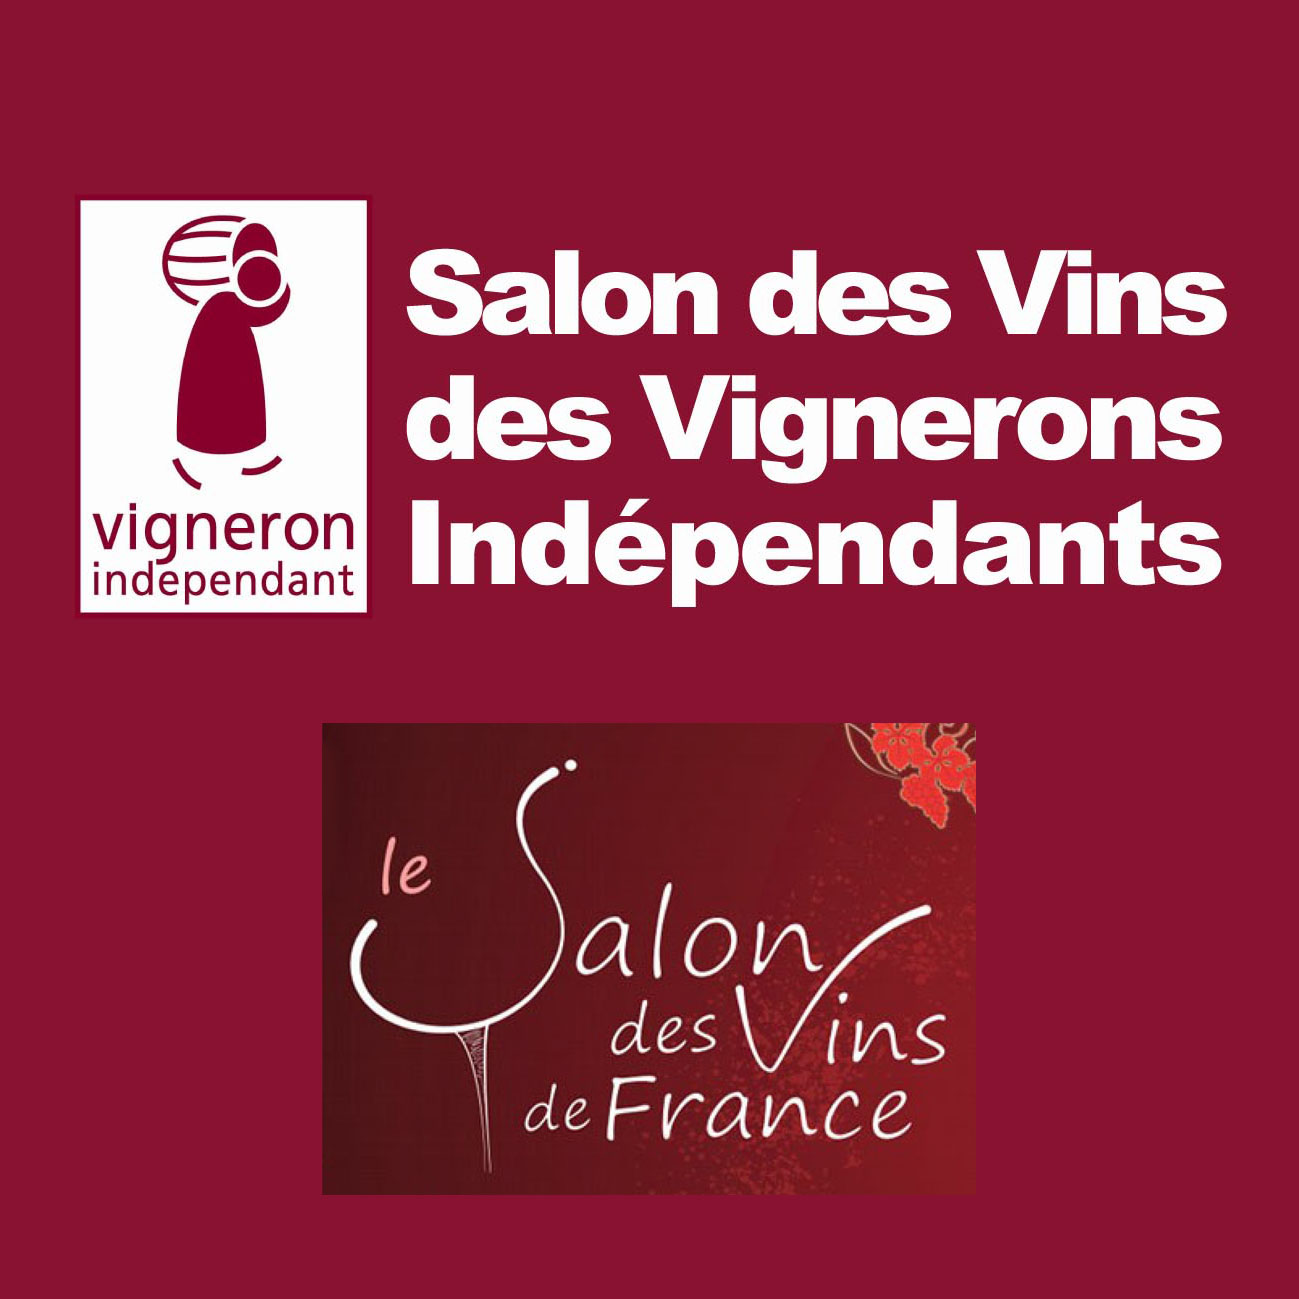 Salon des vignerons ind pendants de lille domaine durieu for Porte de champerret salon des vignerons